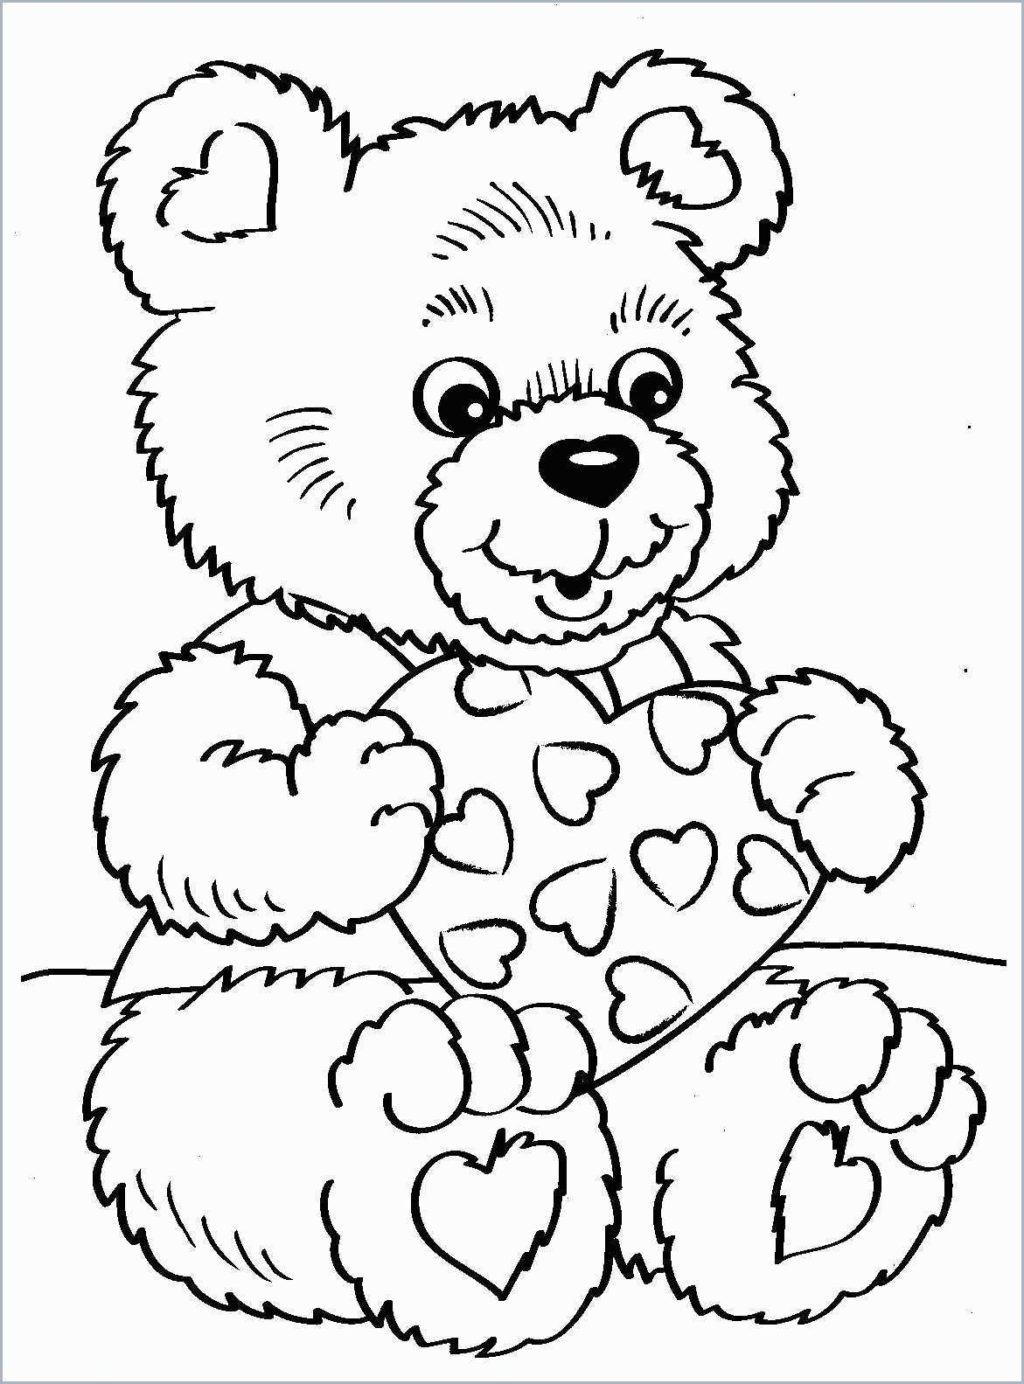 Valentine Coloring Book Pages Coloring Books Coloring Booksle Christian Valentine Pages For Kids